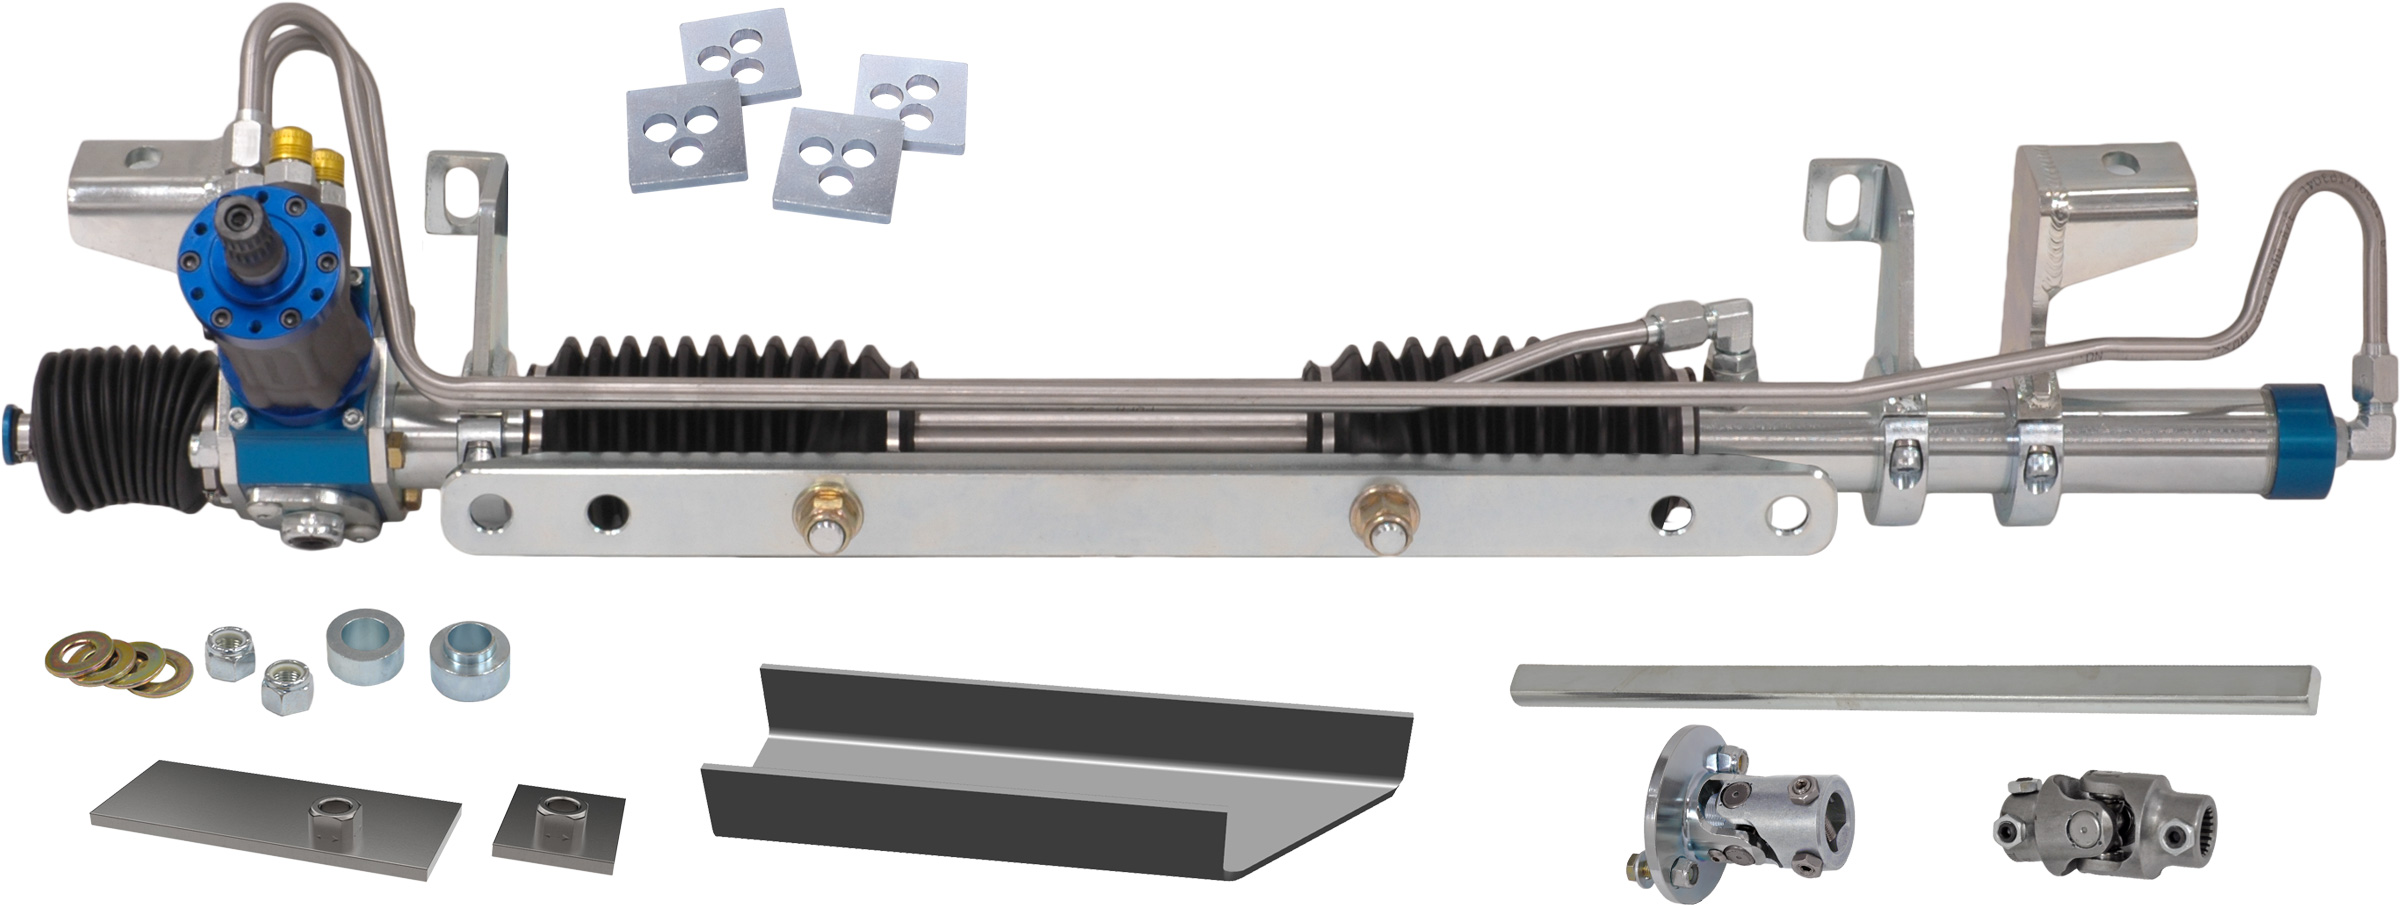 s billetmanualrack alston rack pinion press billet pinions chris and prkr manual chassisworks cac